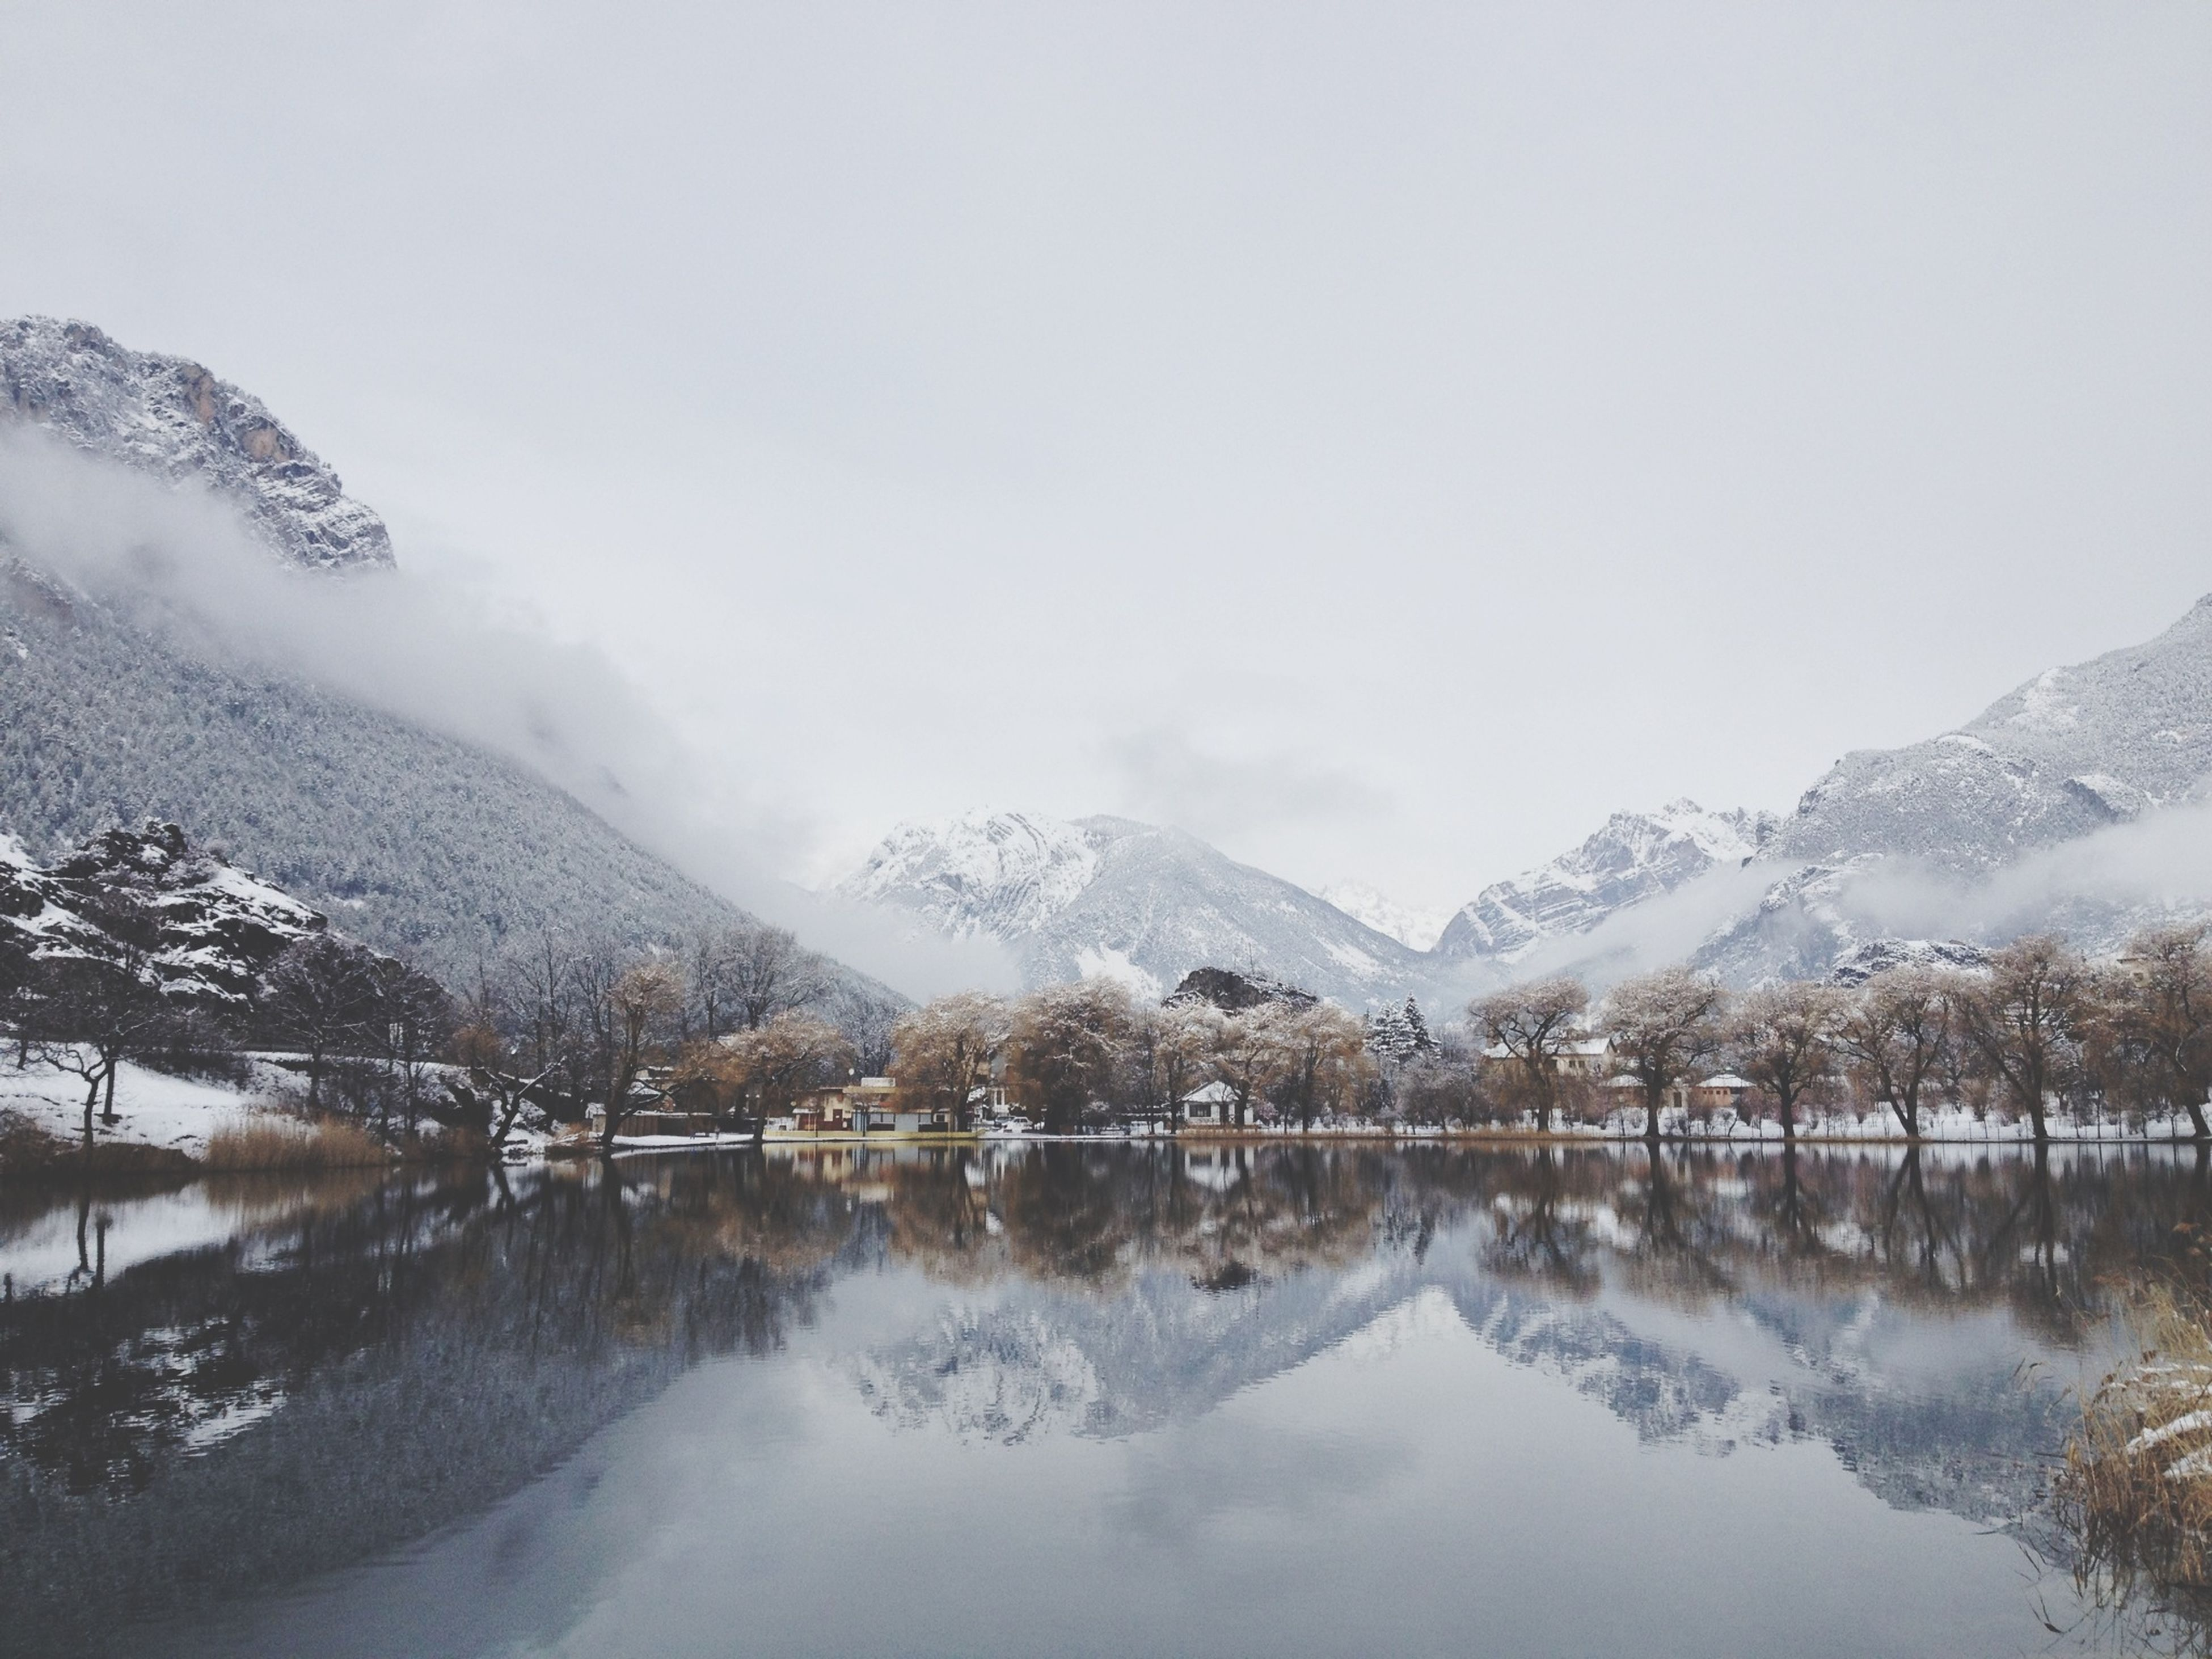 winter, snow, cold temperature, season, mountain, weather, tranquil scene, tranquility, scenics, mountain range, beauty in nature, frozen, lake, tree, covering, nature, snowcapped mountain, water, sky, landscape